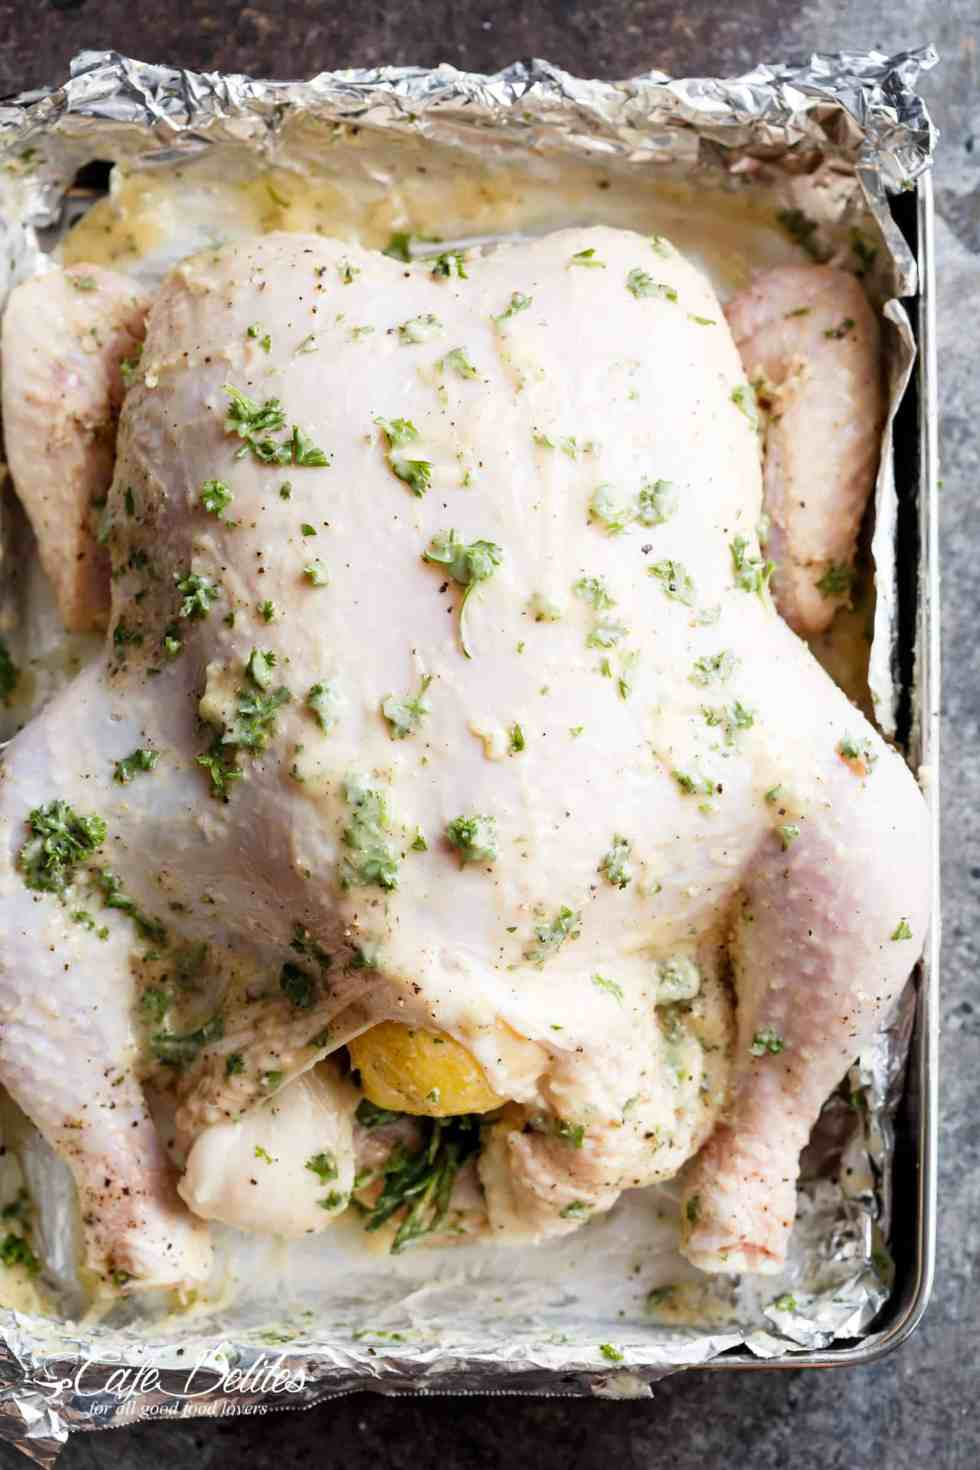 Roast chicken with garlic butter, rosemary, parsley, lemon, and a hint of white wine for an unbeatable flavour. | cafedelites.com